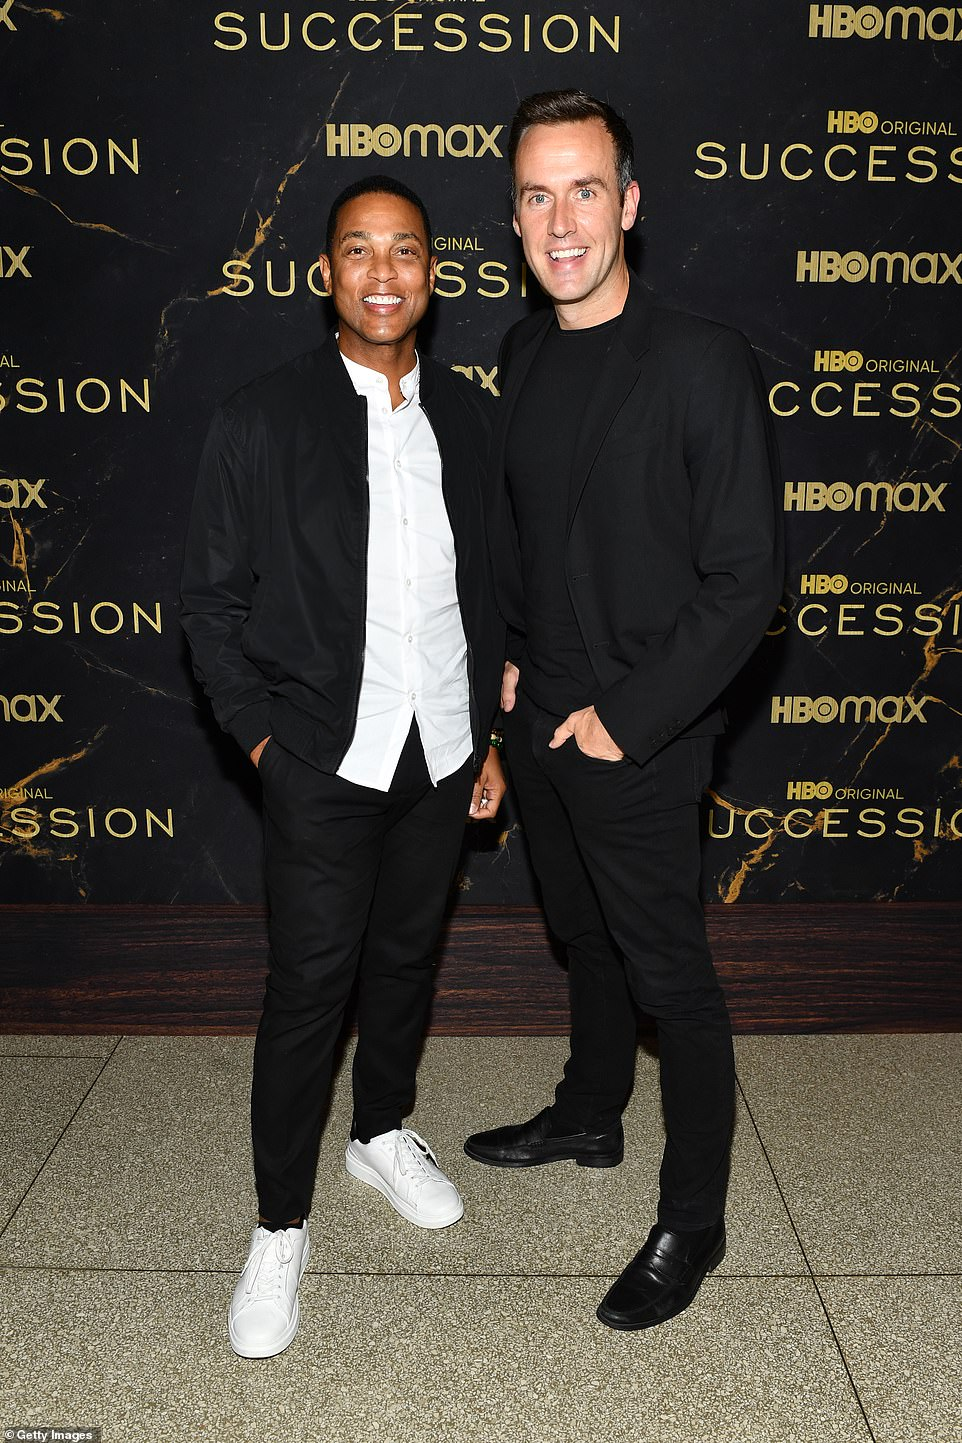 Hot couple:Don Lemon and his handsome partner Tim Malone beamed for shutterbugs. The famed journalist looked casual cool with a black sports jacket and bright white sneakers